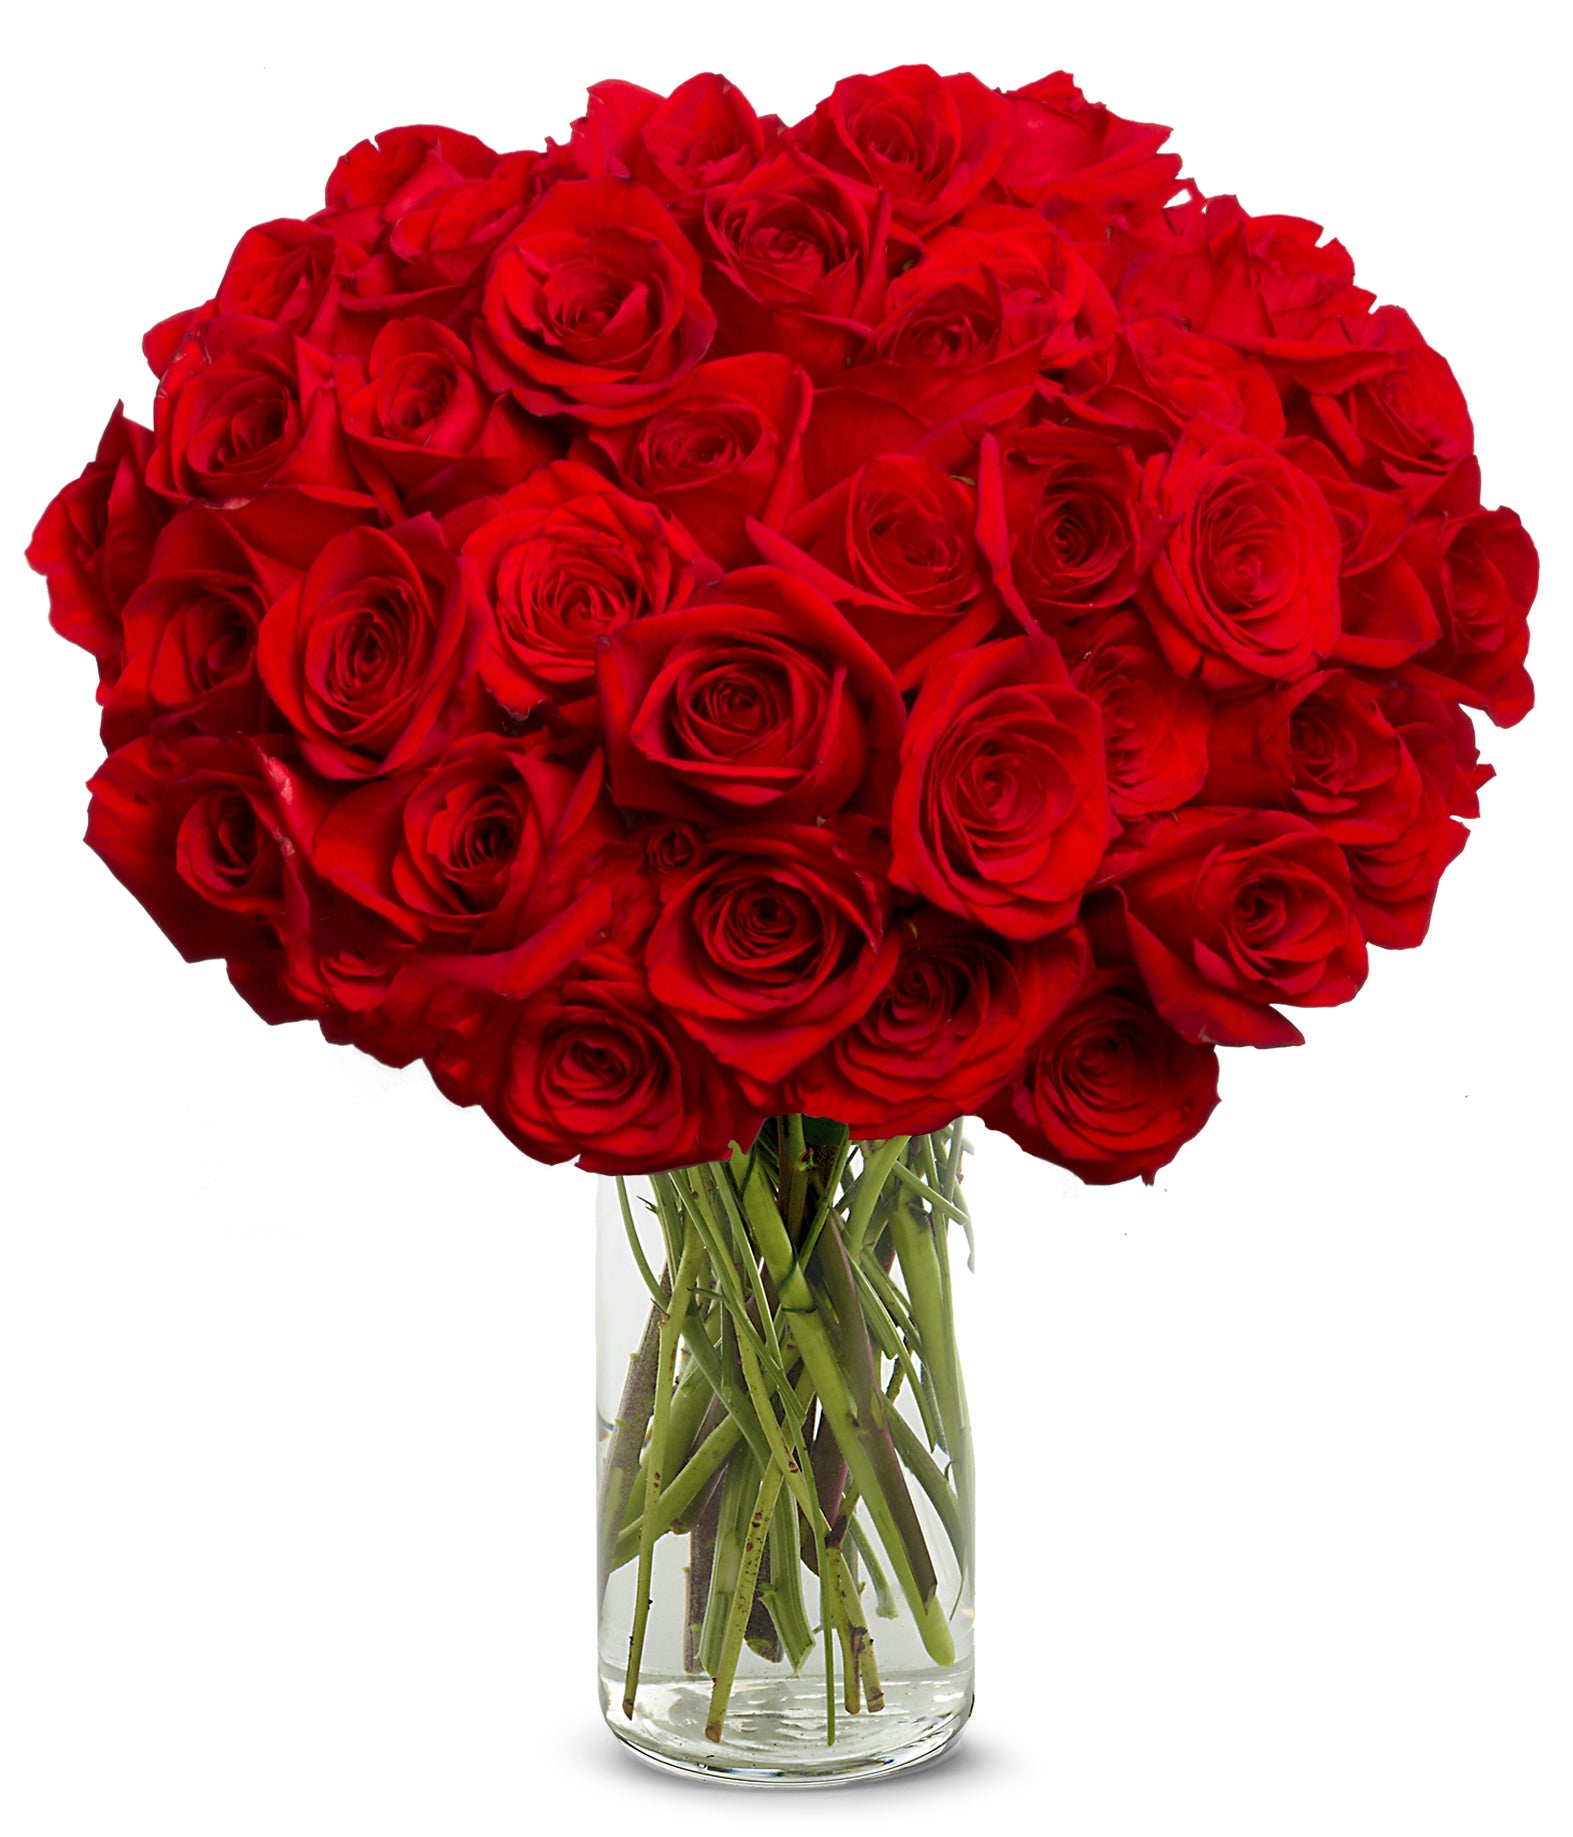 50 Stunning Long Stemmed Red Roses